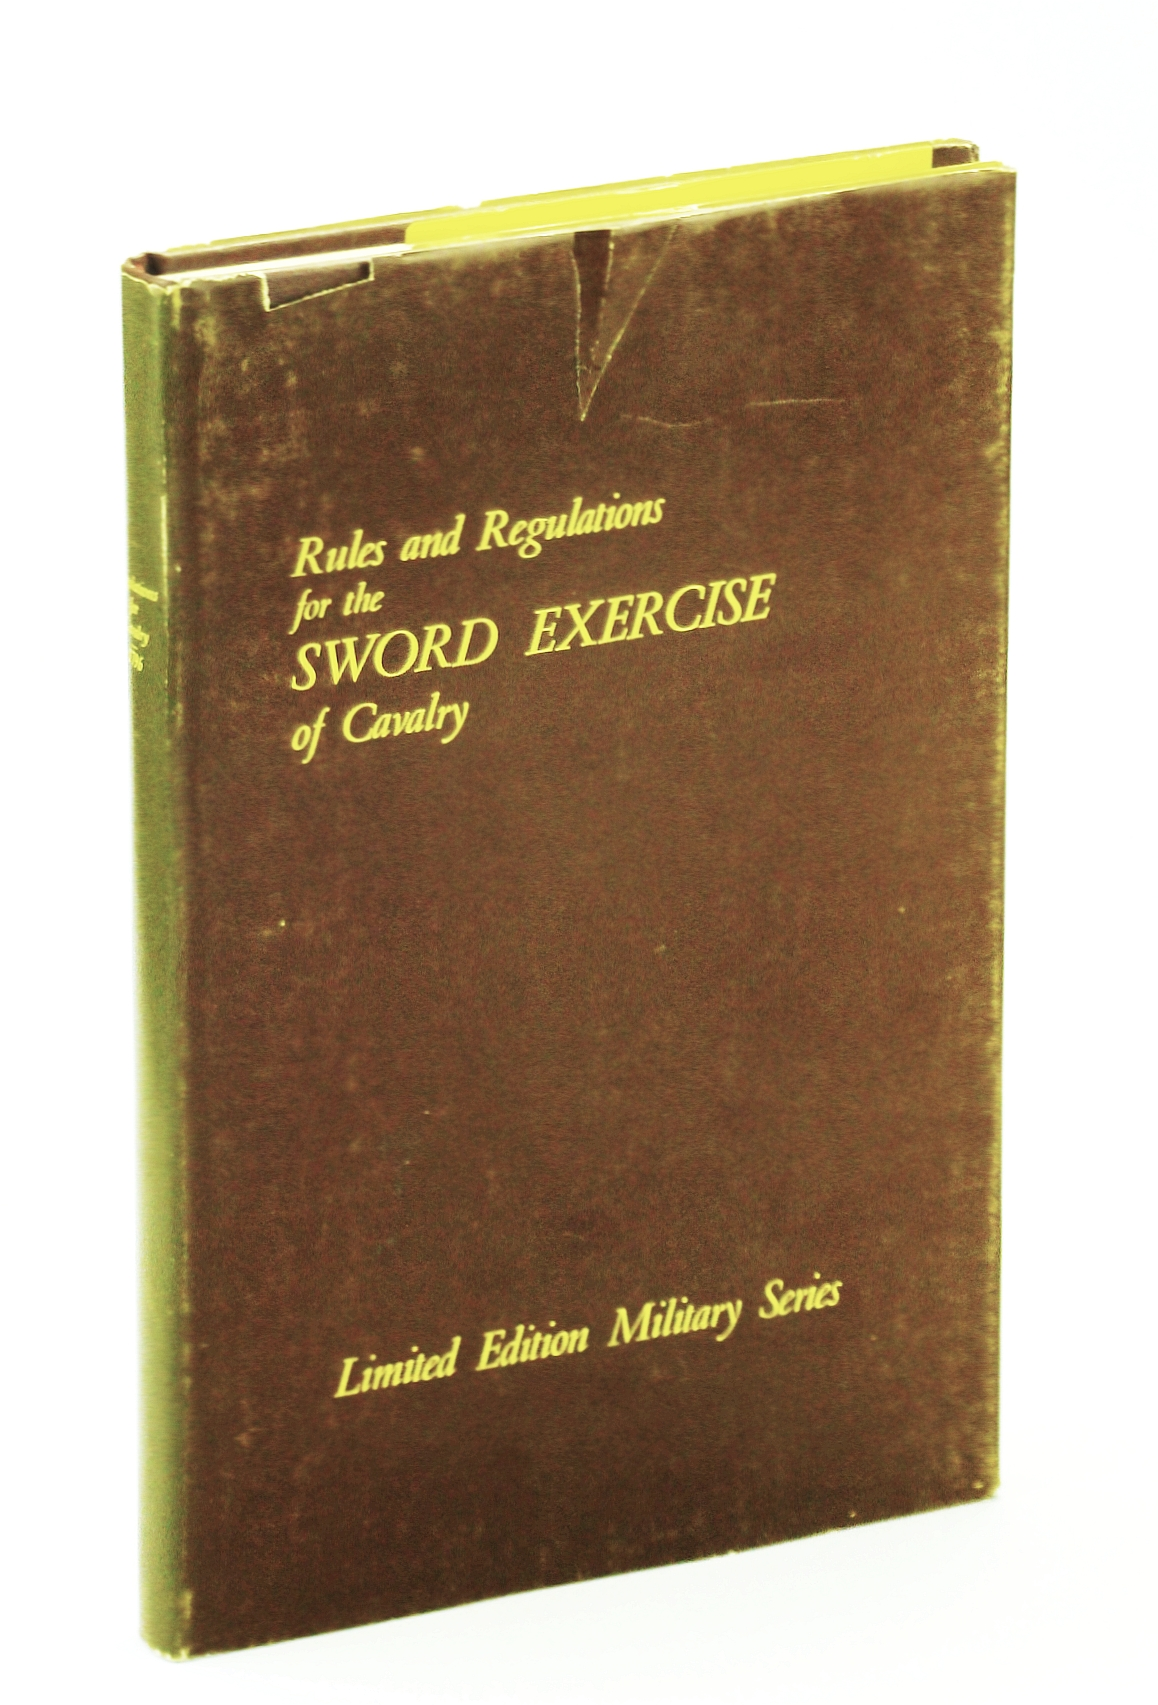 Image for Rules and Regulations for the Sword Exercise of the Cavalry - Limited Edition Military Series